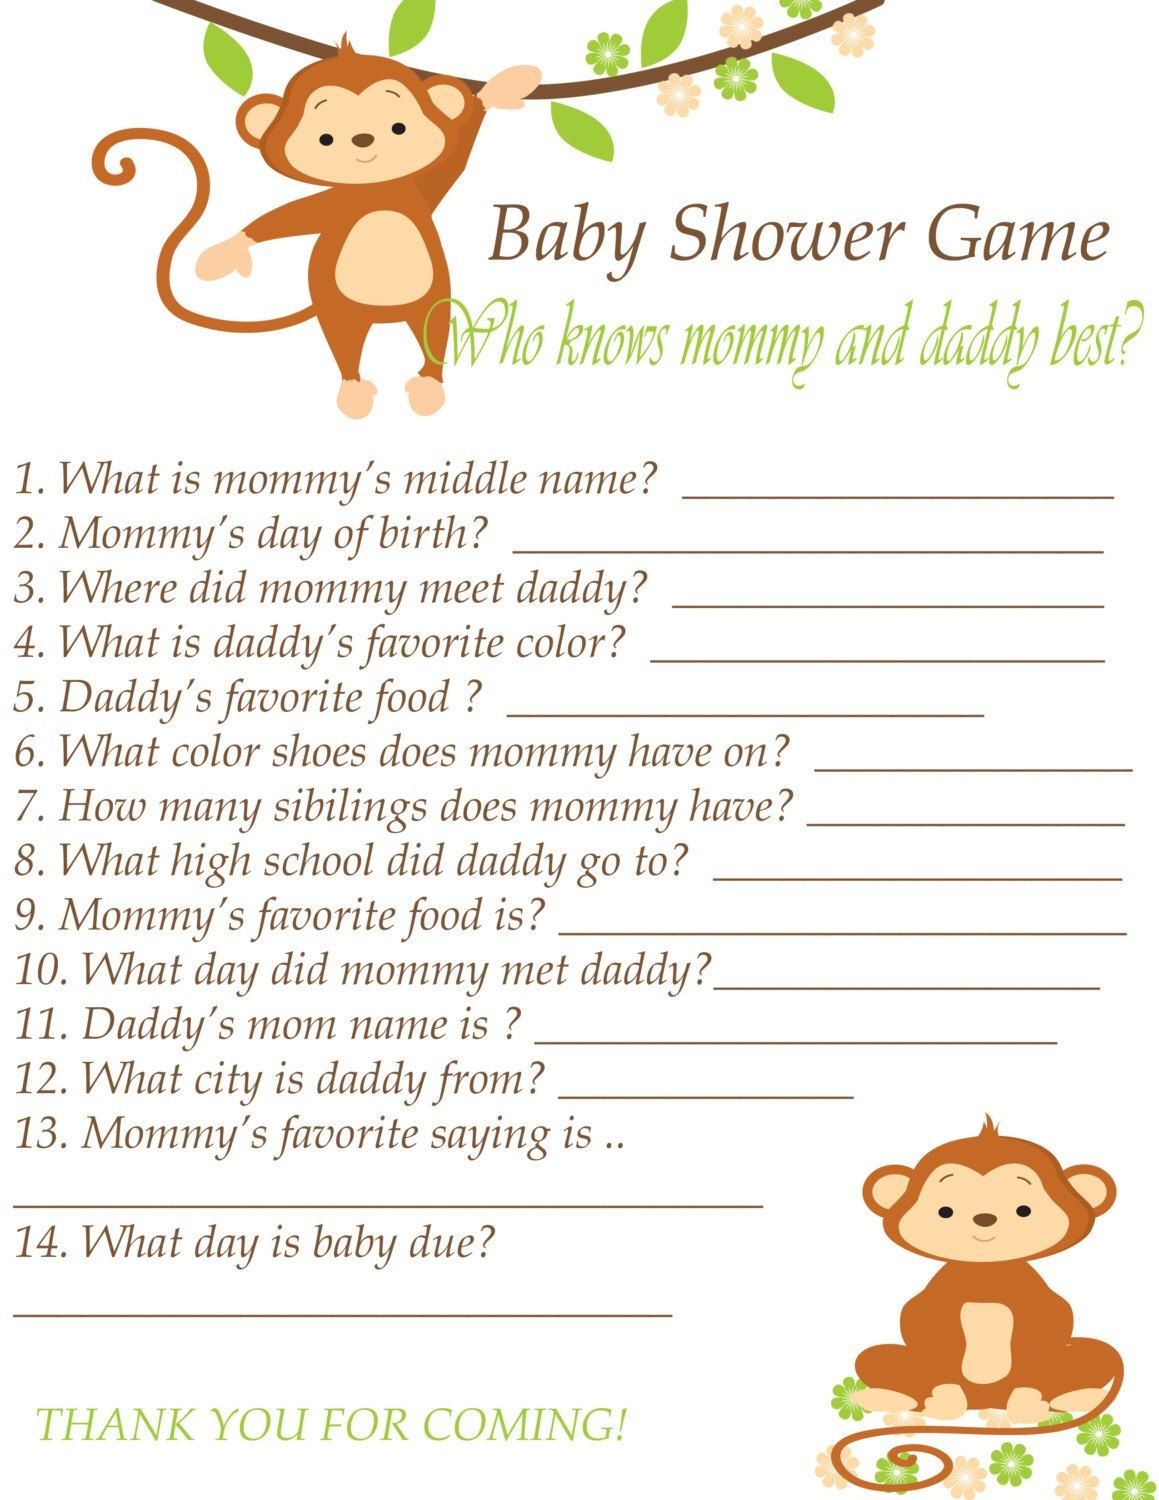 Pinalicia Wood On Baby Shower   Baby Shower Printables, Baby - Who Knows Mommy And Daddy Best Free Printable